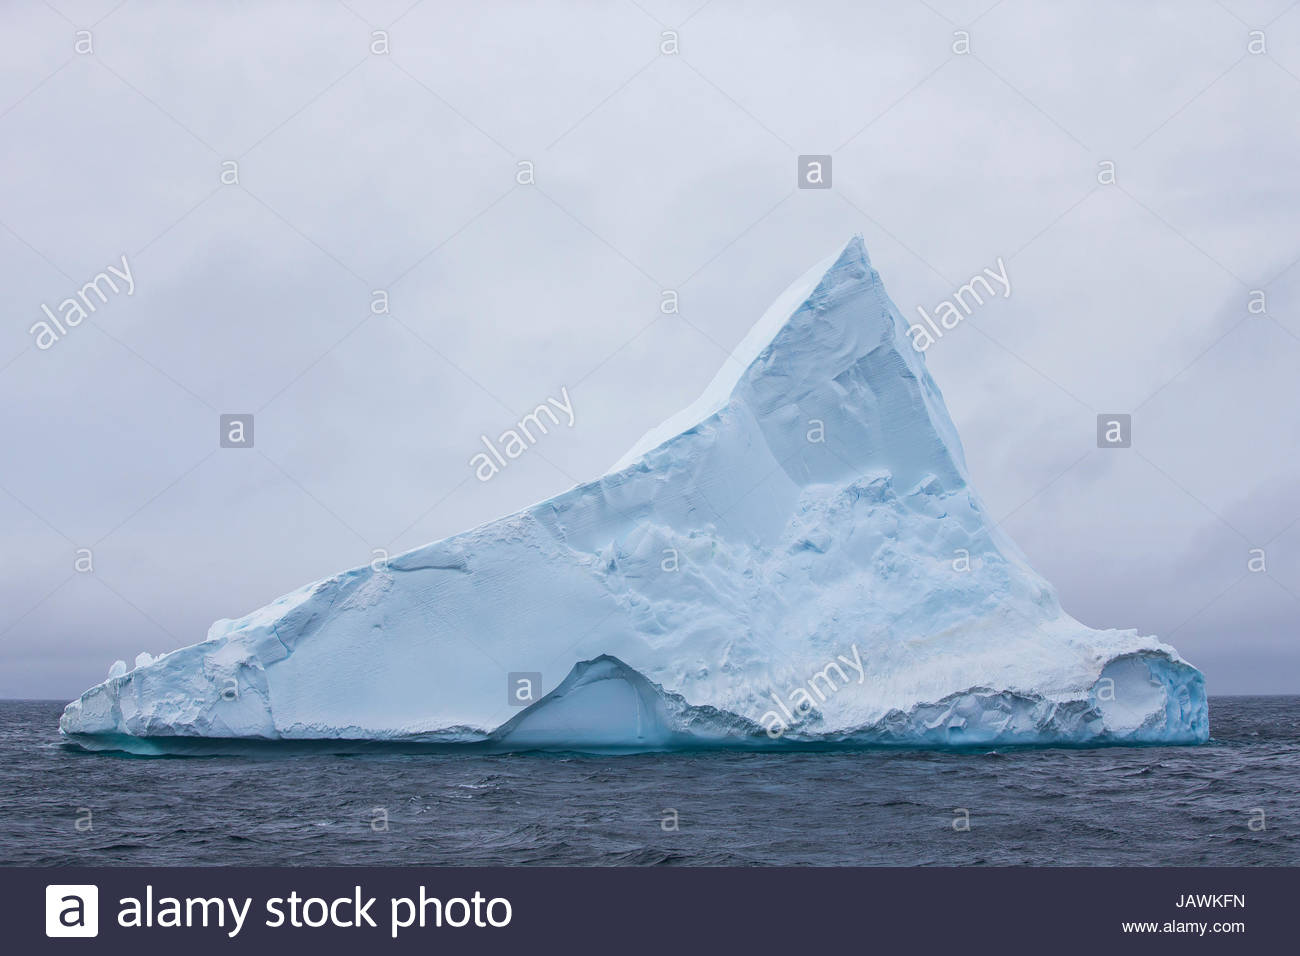 Iceberg tabulaire avec un point dans l'Antarctique. Photo Stock